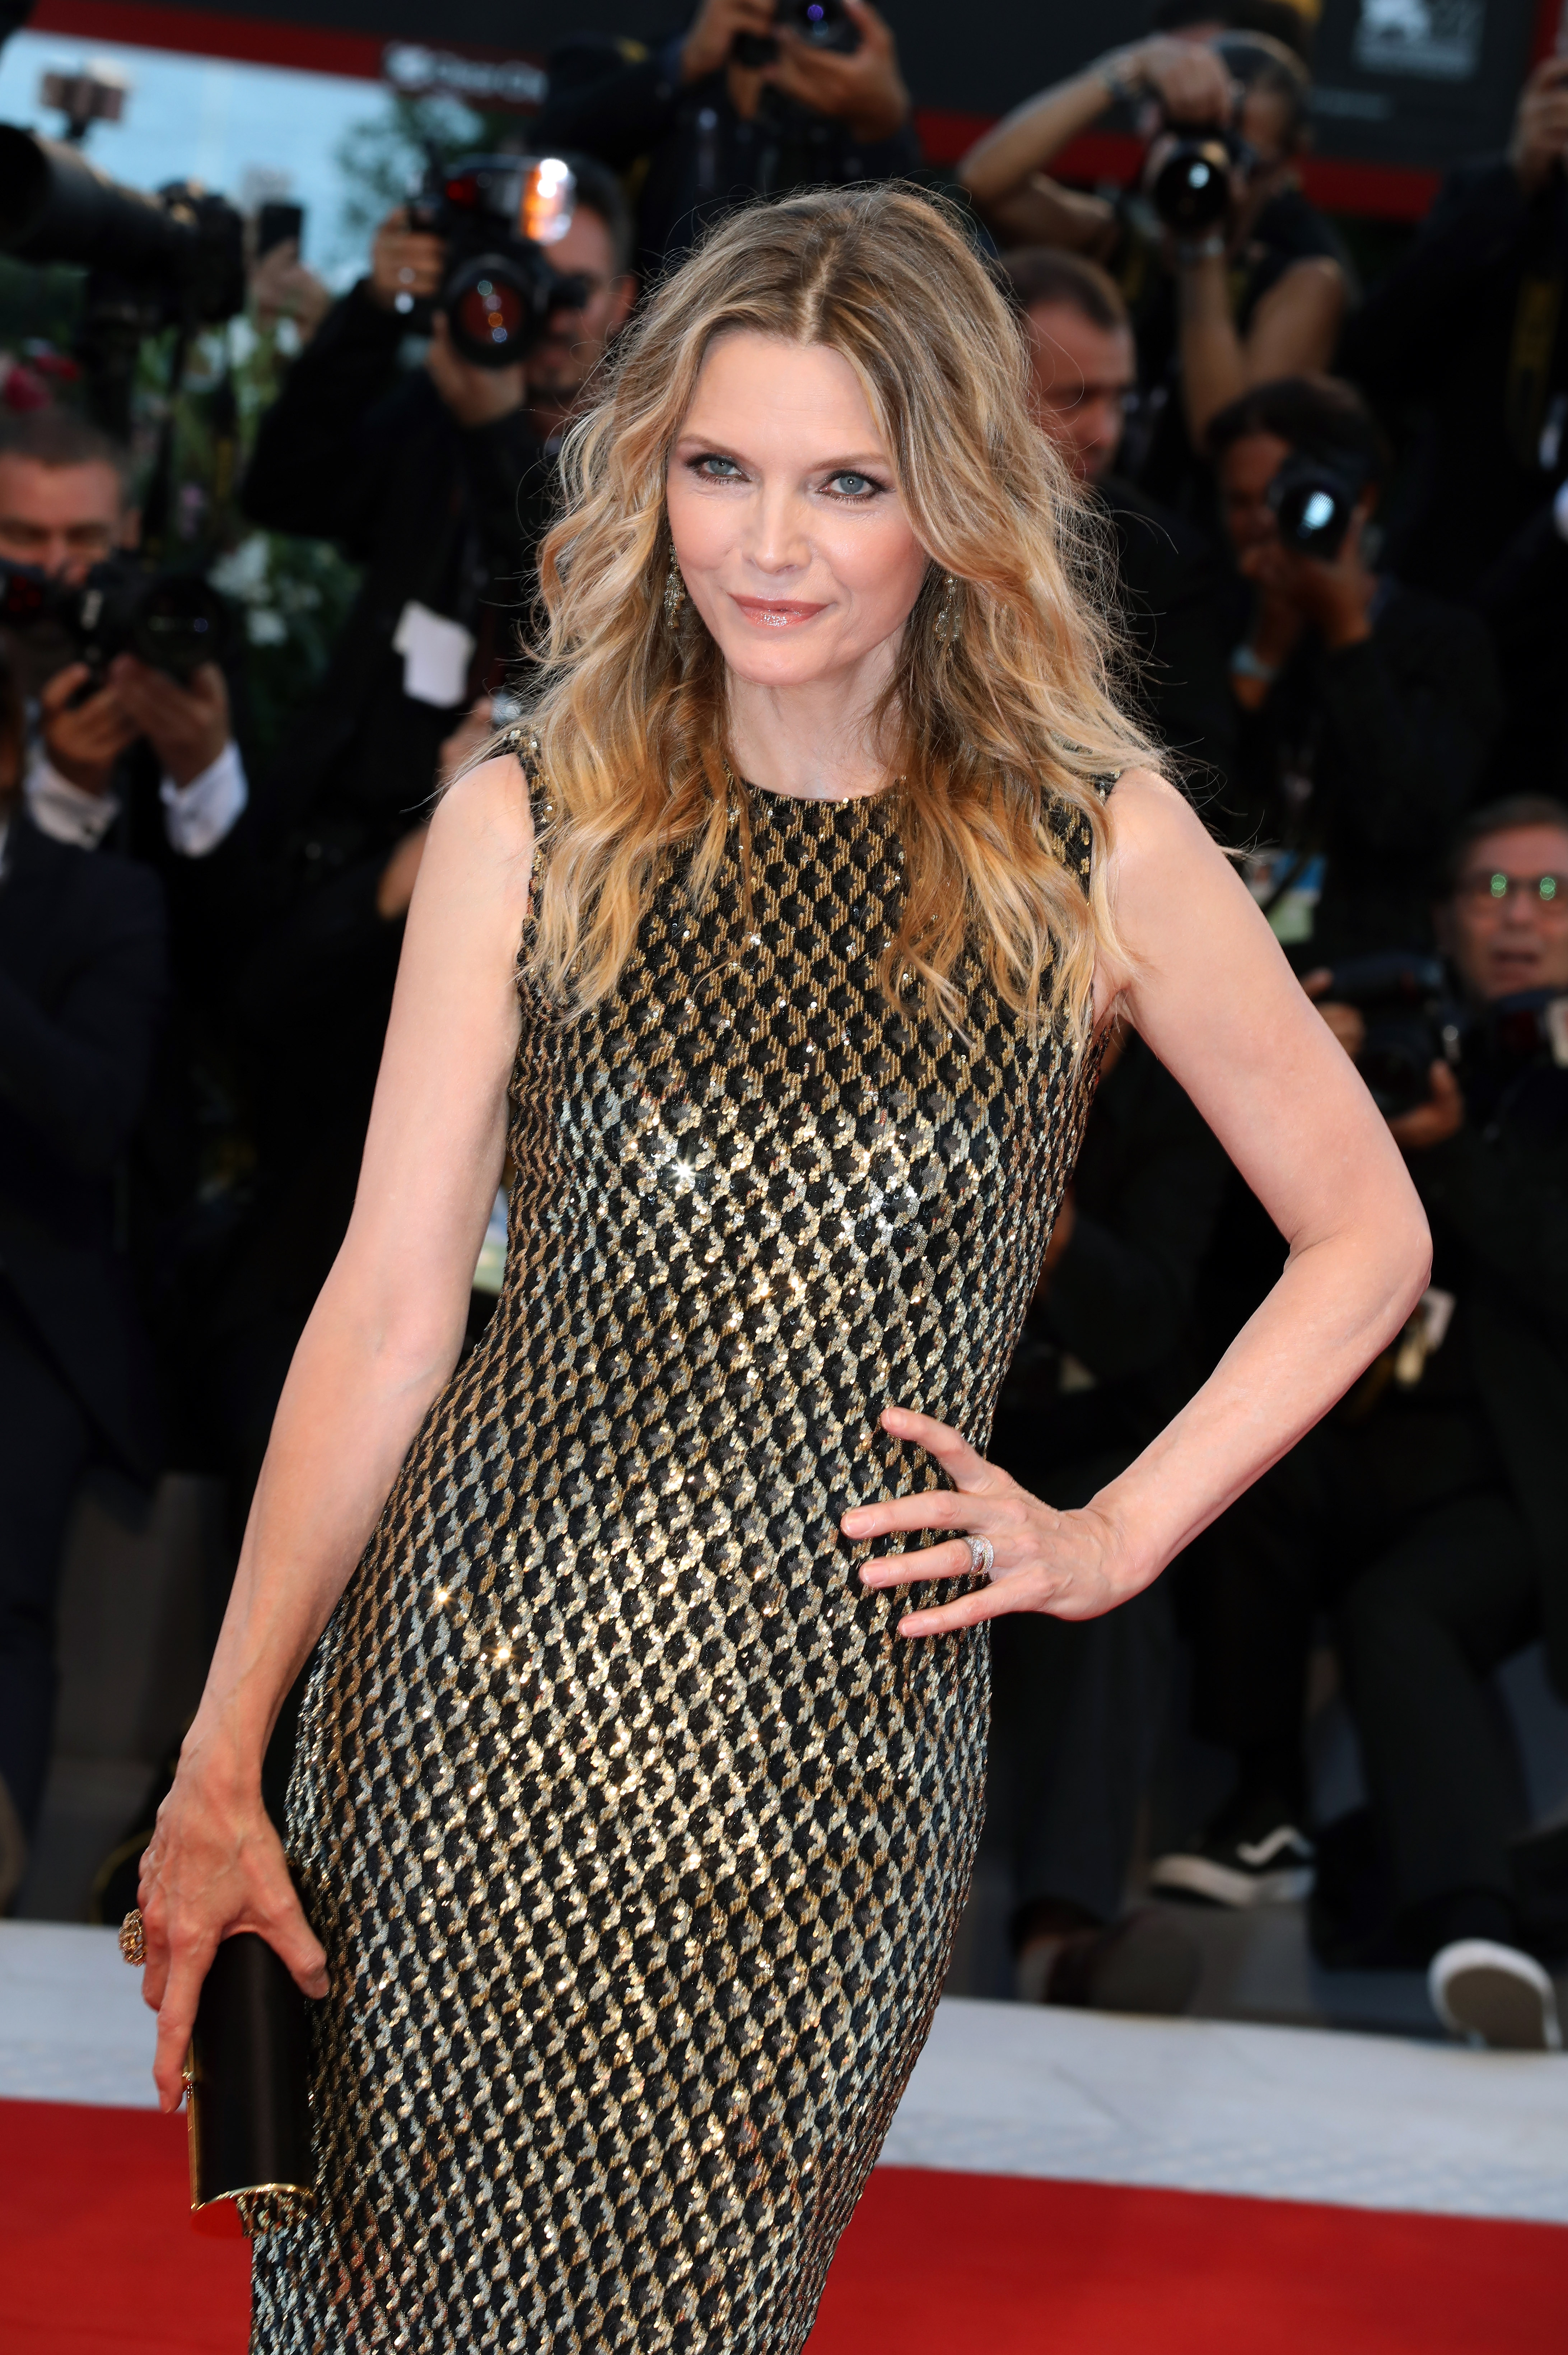 "<p>Michelle Pfeiffer, 59, took Bruno Mars' lyrics to <em>Uptown Funk</em> to heart for her red carpet return alongside Jennifer Lawrence at the Venice Film Festival.</p> <p>The star of <em>Grease 2, Scarface, Dangerous Liaisons</em> and the upcoming <em>Mother </em>dazzled in a golden gown from US designer Michael Kors with a Tods clutch.</p> <p>While the lyric ""Michelle Pfeiffer, that white gold,"" might have inspired her metallic moment on the red carpet, the accomplished actress and mother-of-two has mixed feelings about the song.</p> <p>""I was really shocked and bewildered and kind of flattered,"" Pfeiffer told <a href=""http://wcbsfm.cbslocal.com/2017/05/18/michelle-pfeiffer-on-hearing-her-name-in-bruno-mars-uptown-funk/"" target=""_blank"">CBS FM</a>'s Brad Blanks in May. ""Wow, that's cool. But sometimes I'm in an exercise class and I'm kind of embarrassed!""</p> <p>Pfeiffer wasn't the only style standout on in Venice, with co-star Lawrece exquisite in Christian Dior haute couture and British theatre royalty Rebecca Hall sleek in Armani.</p> <p>See the red carpet winners (and losers, sorry Diane Kruger but what were you thinking?) here.</p> <p> </p>"